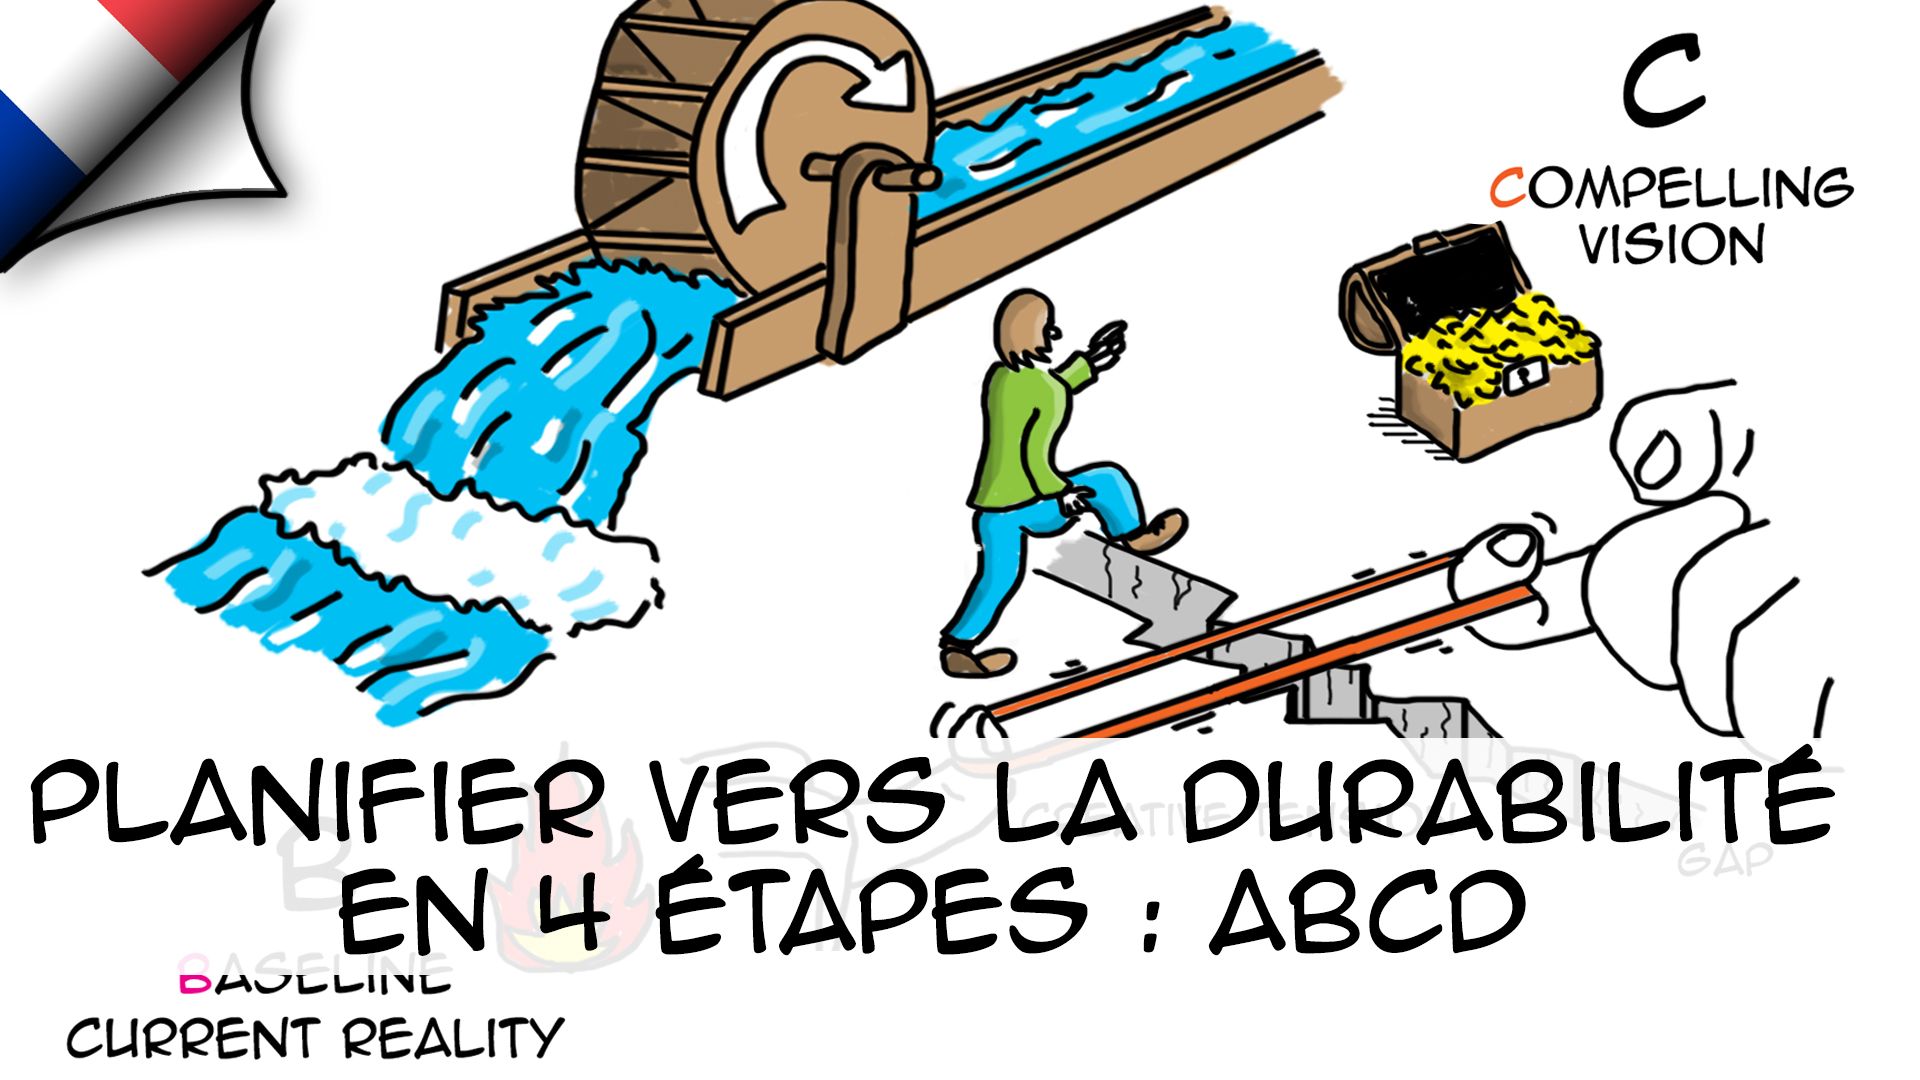 Planification durable en 4 étapes: ABCD